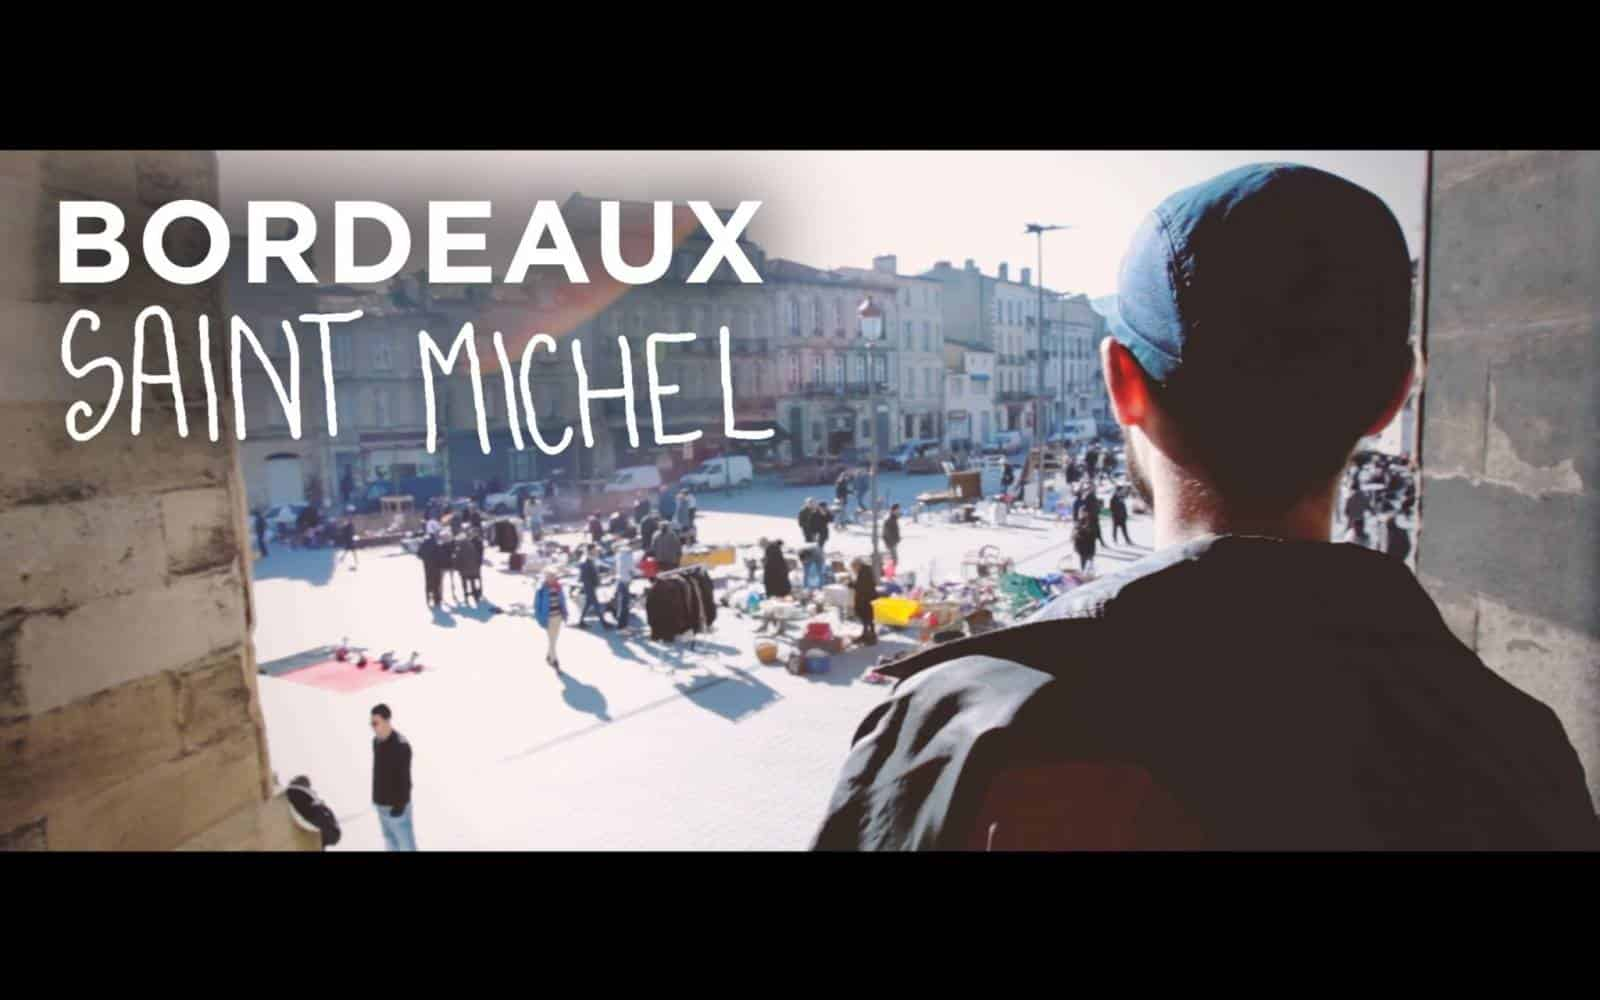 Quartier Saint-Michel à Bordeau